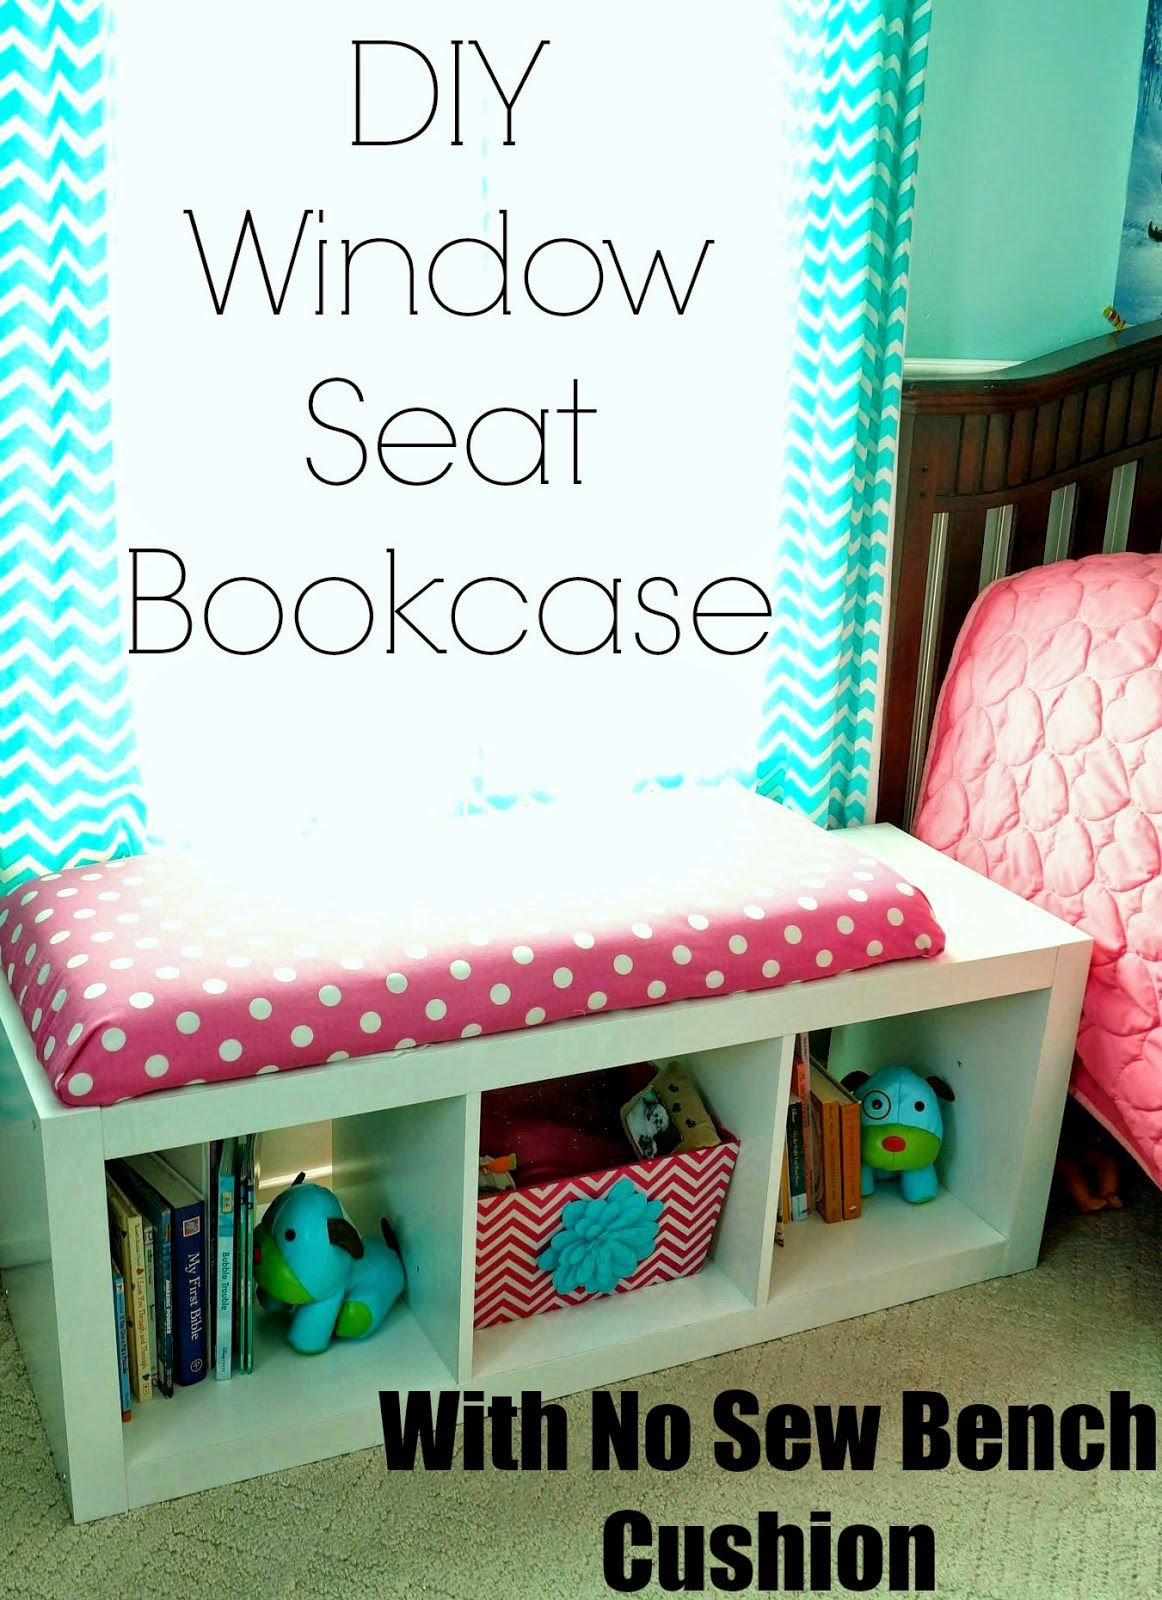 Diy Window Seat Bookcase With No Sew Bench Cushion Diy